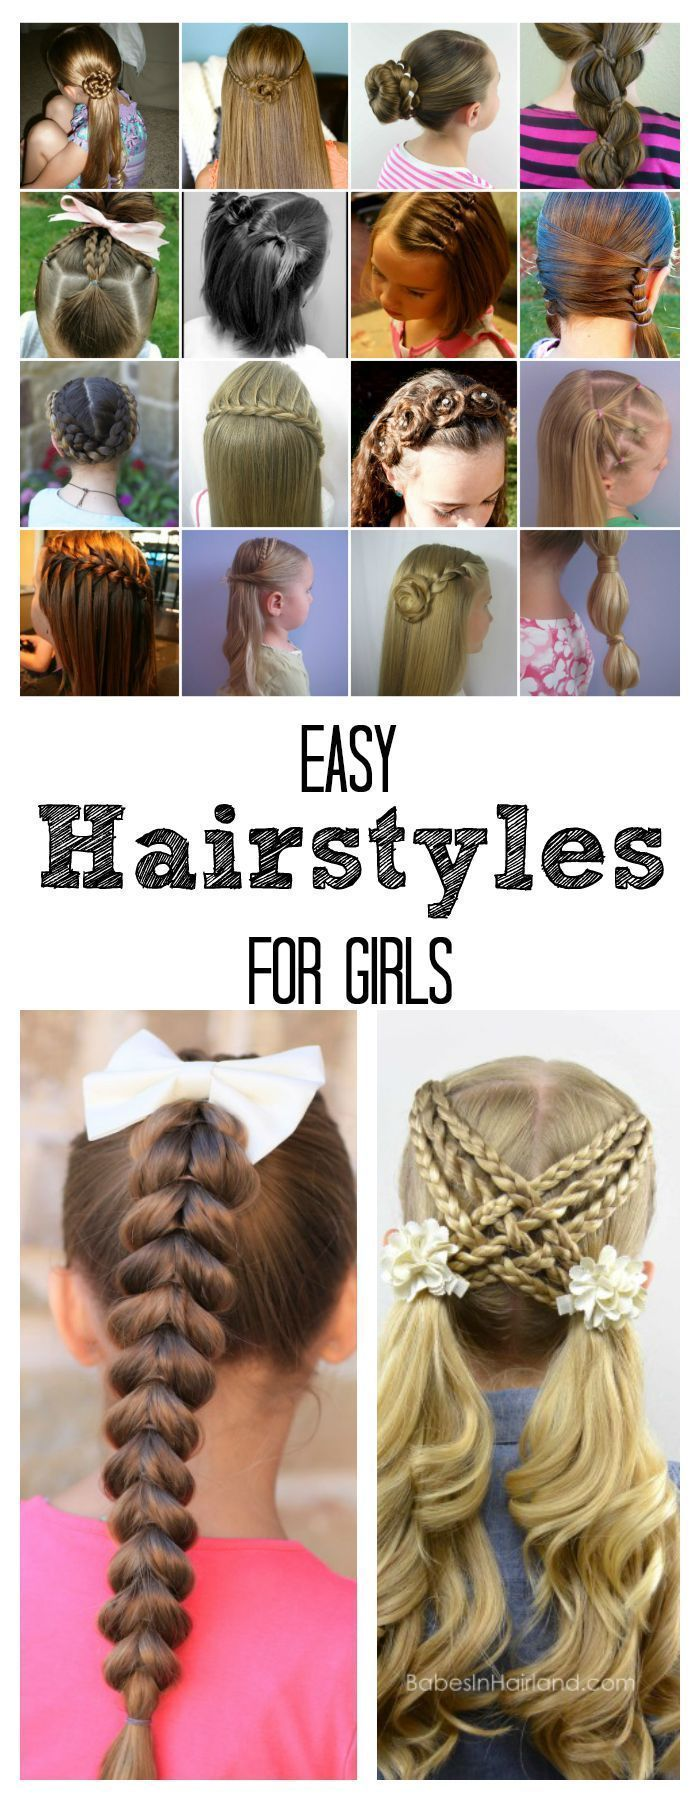 Easy hairstyles for girls sharing over hair tutorials so that